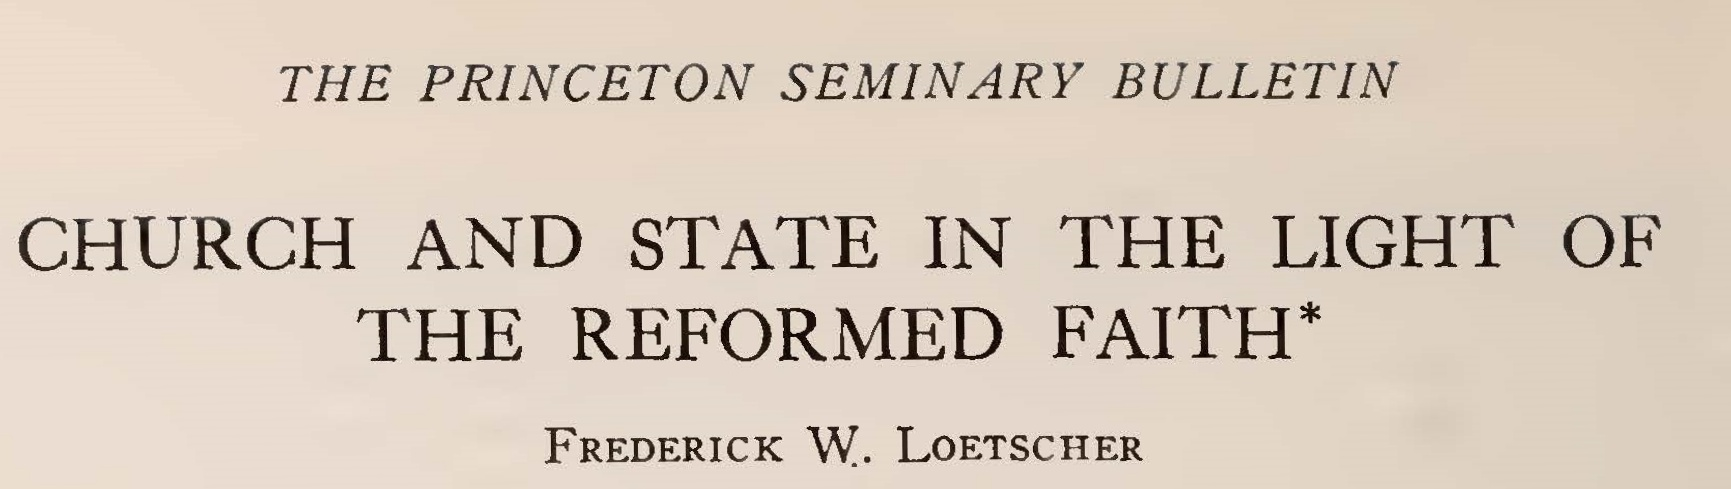 Loetscher, Frederick William, Church and State in the Light of the Reformed Faith Title Page.jpg